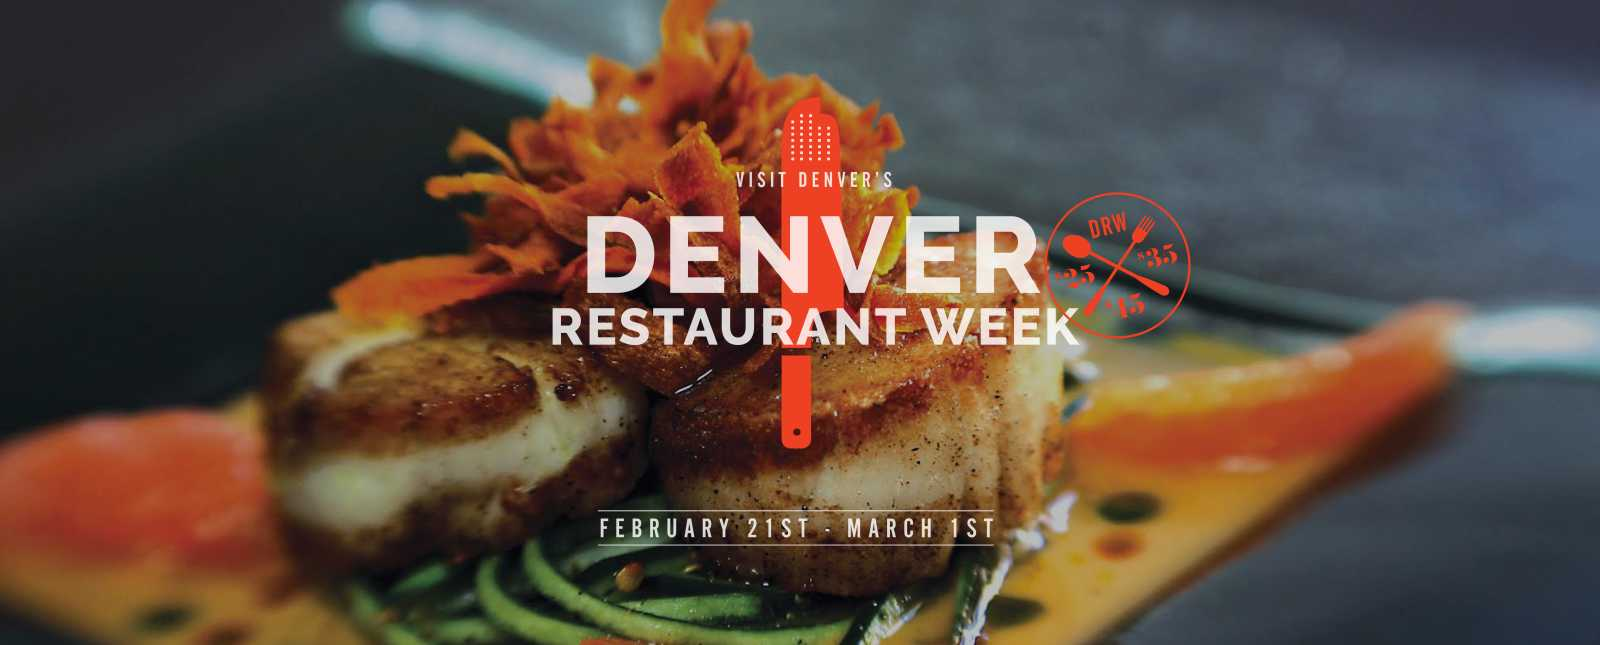 Denver Restaurant Week 2020